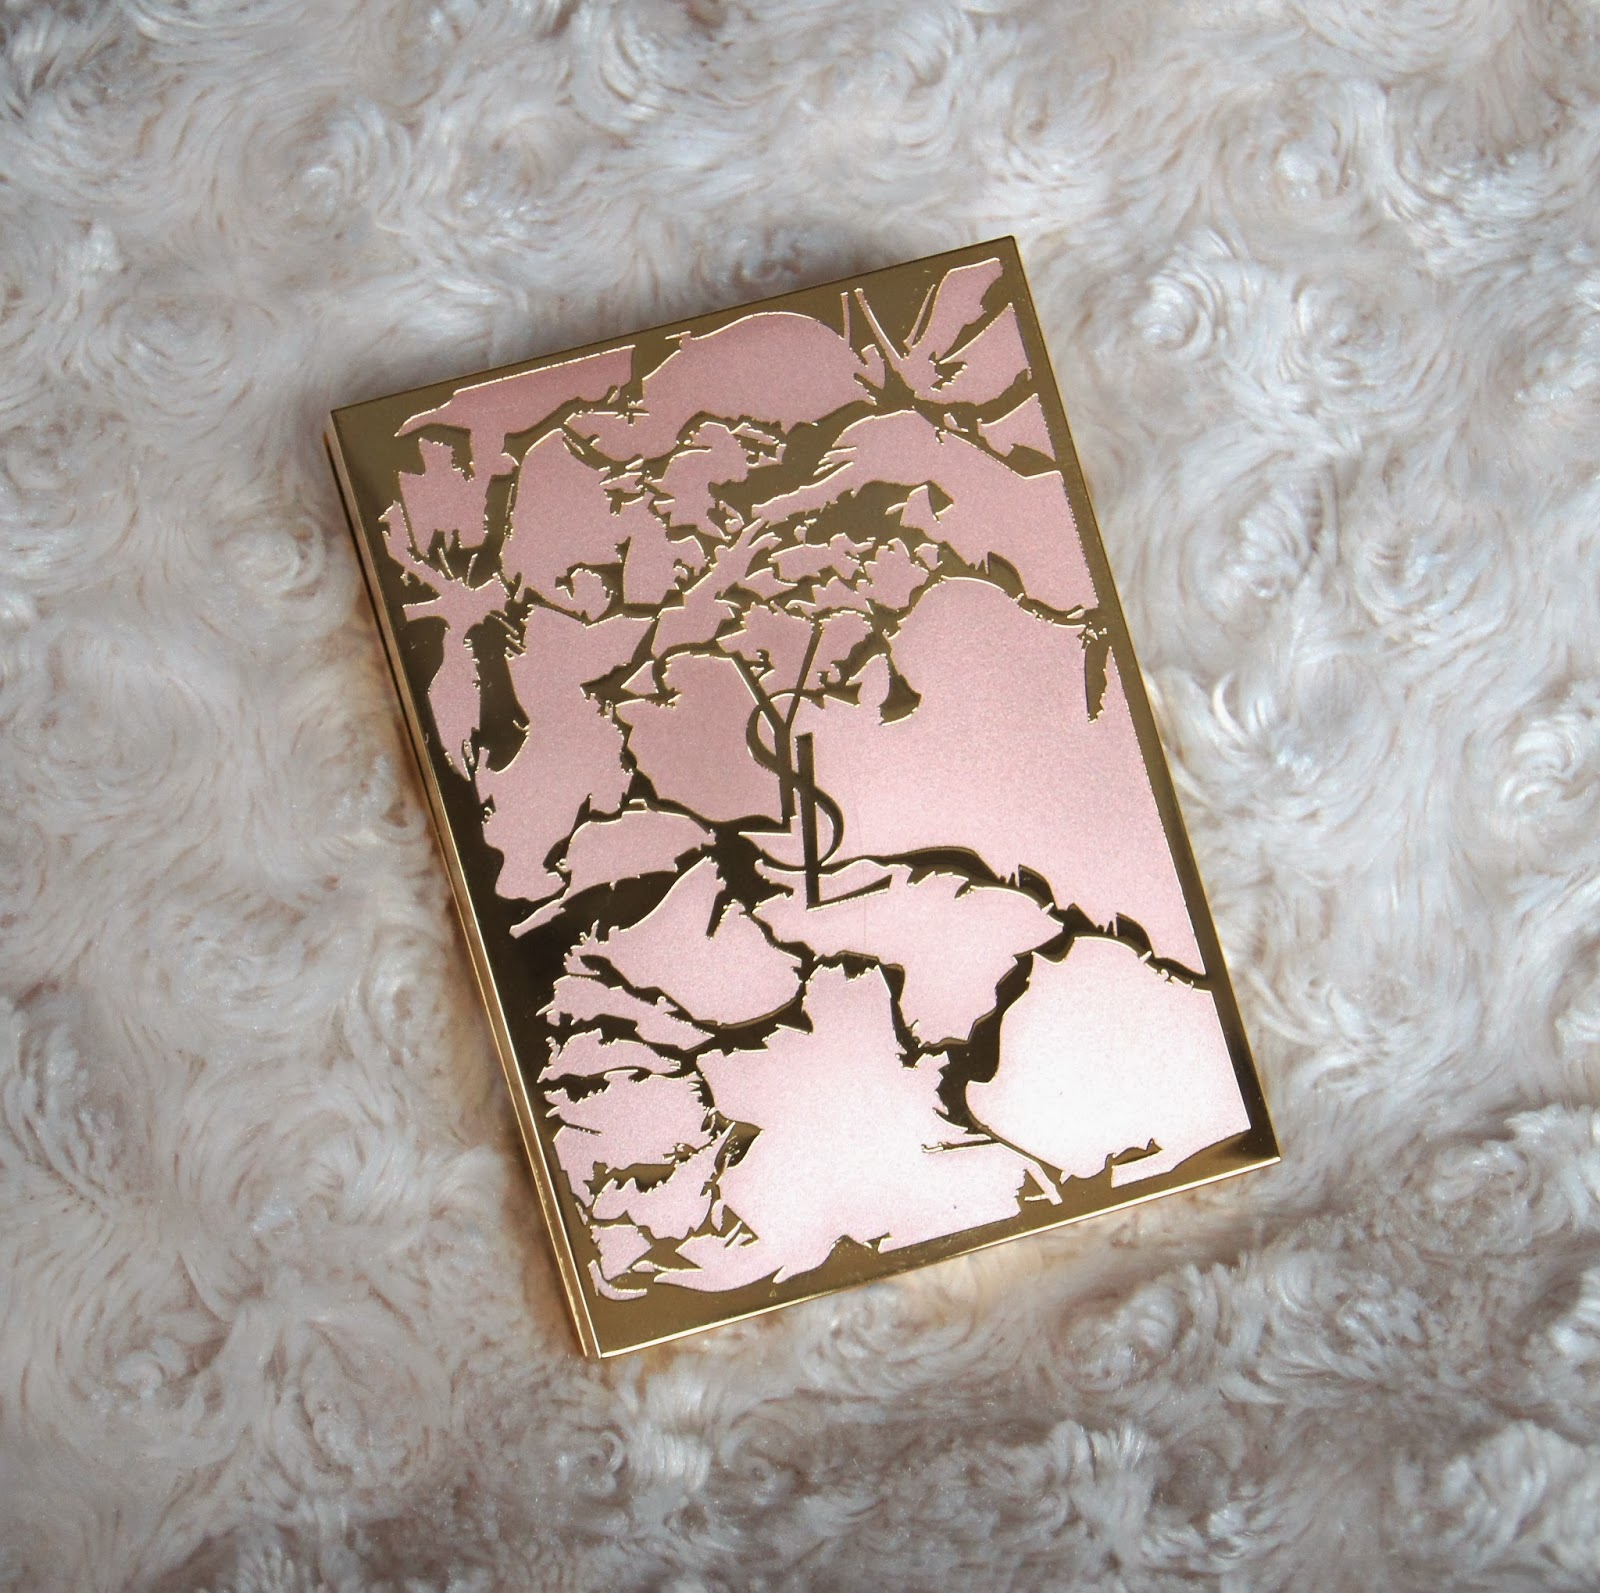 ysl flower crush palette rosy blush review